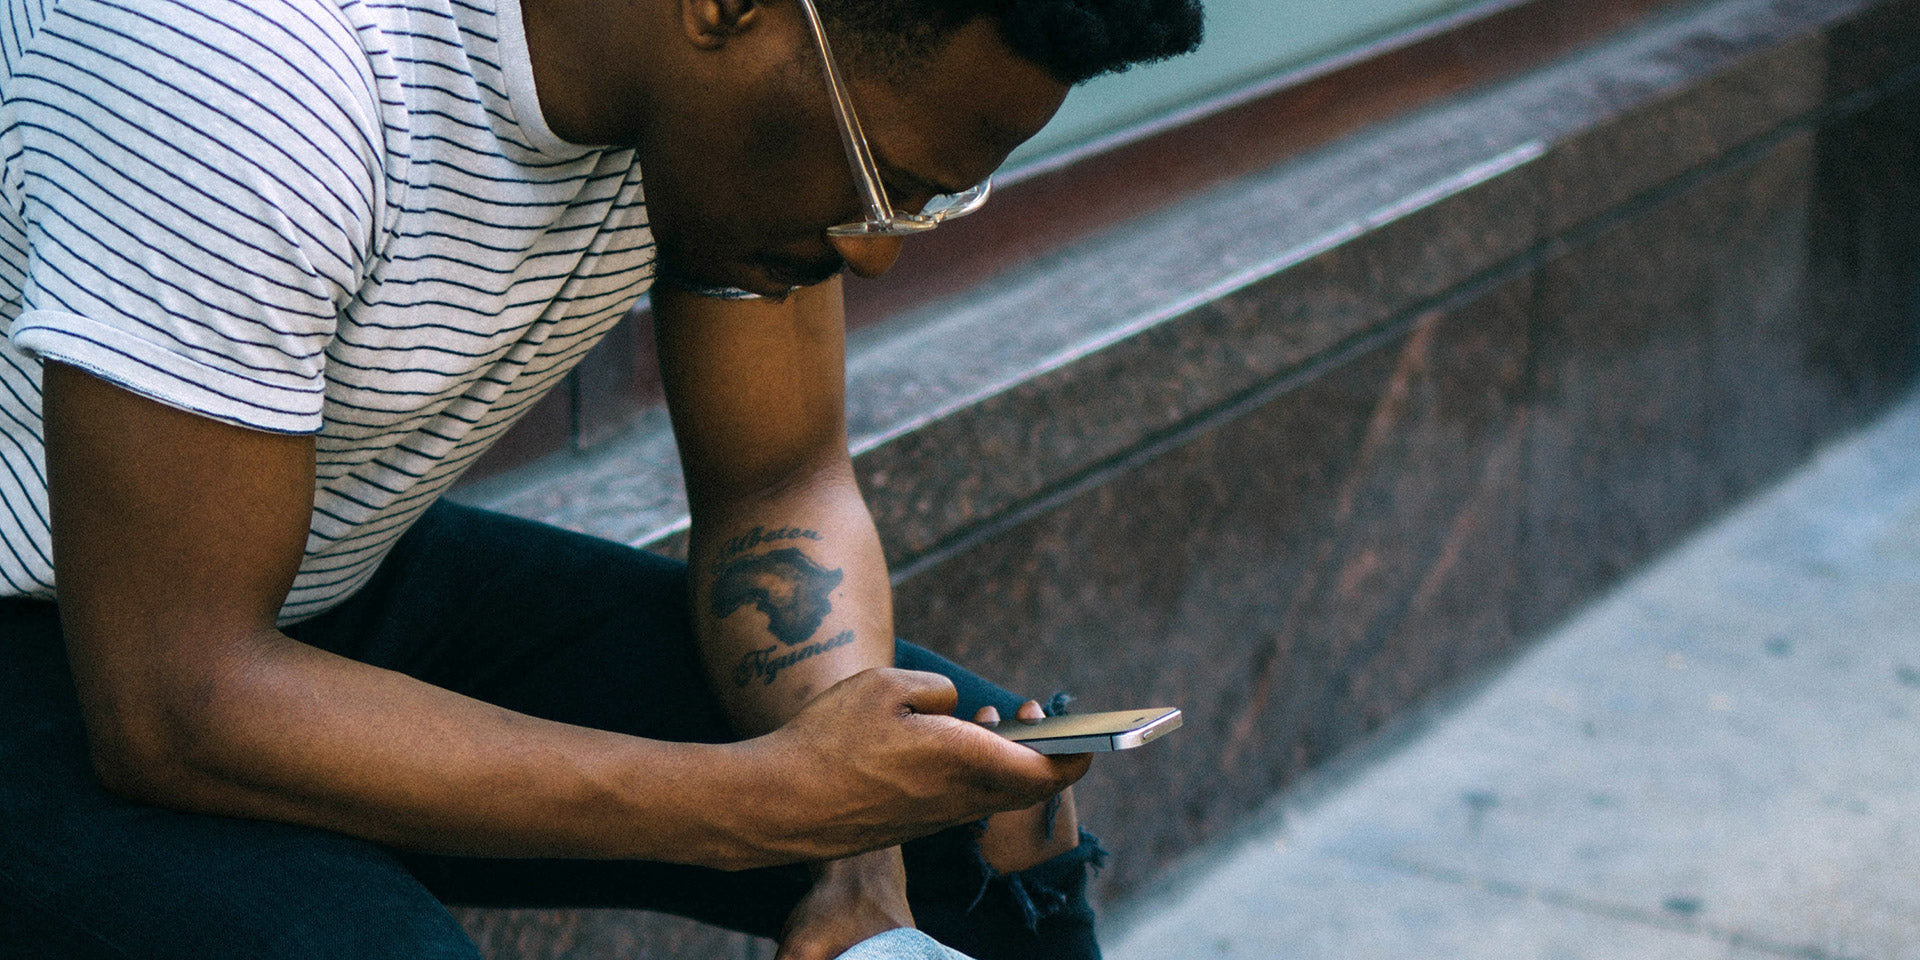 Young man on smartphone